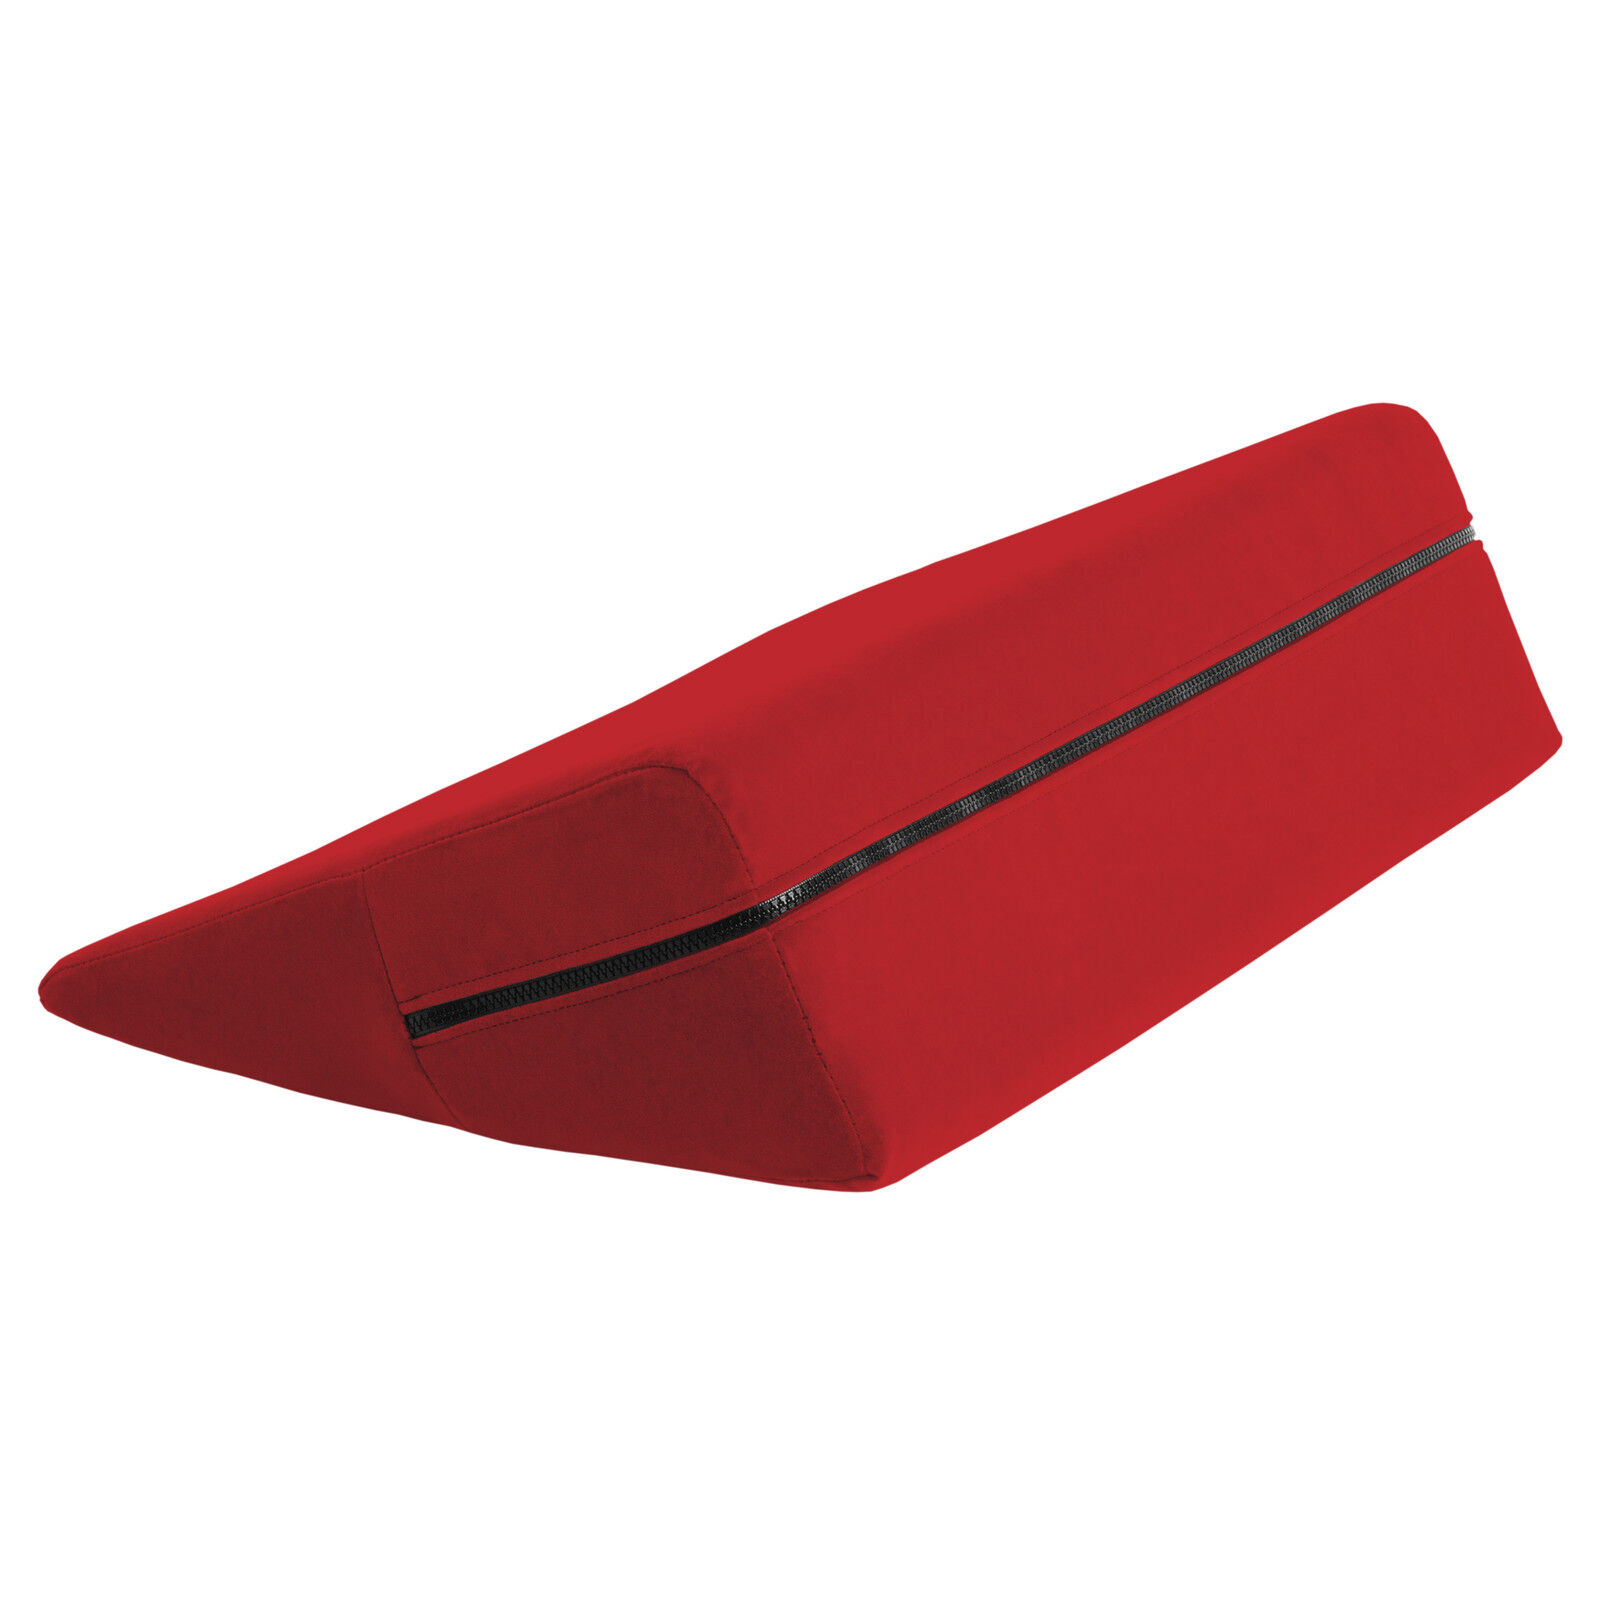 Wedge Intimate Positioning & Massage Pillow Red Microfiber